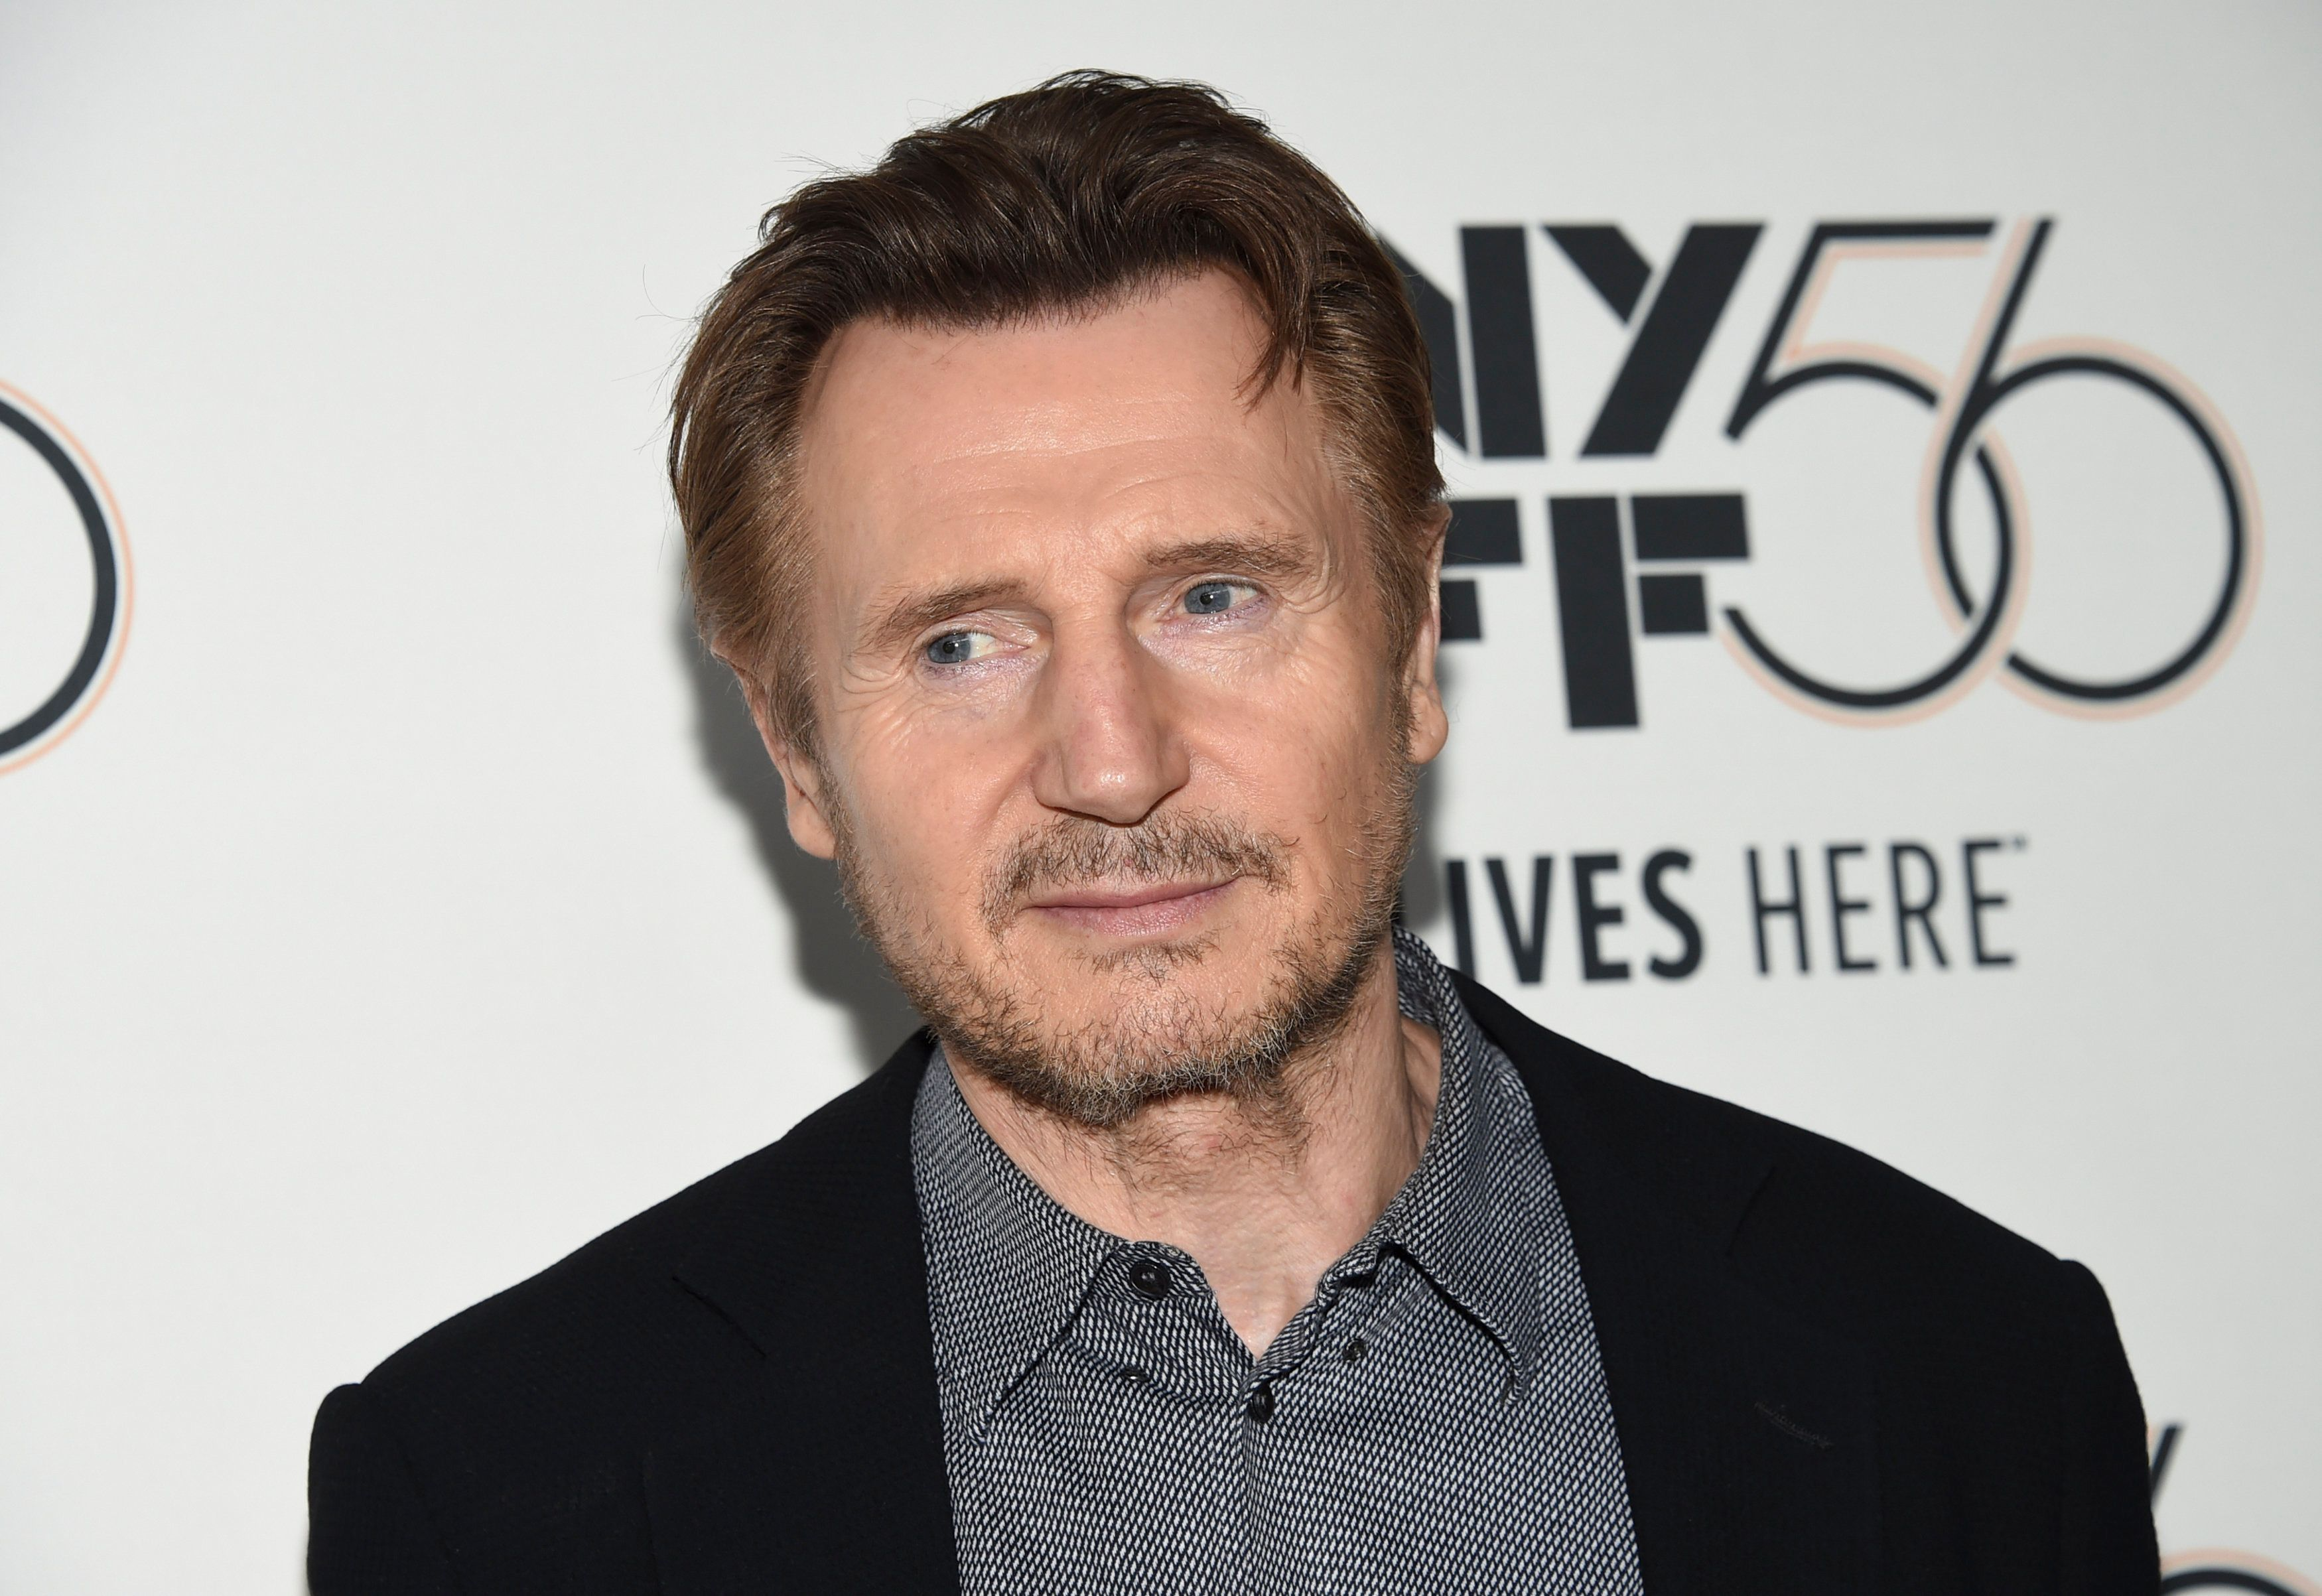 """Actor Liam Neeson attends the premiere for """"The Ballad of Buster Scruggs"""" at Alice Tully Hall during the 56th New York Film Festival on Thursday, Oct. 4, 2018, in New York. (Photo by Evan Agostini/Invision/AP)"""